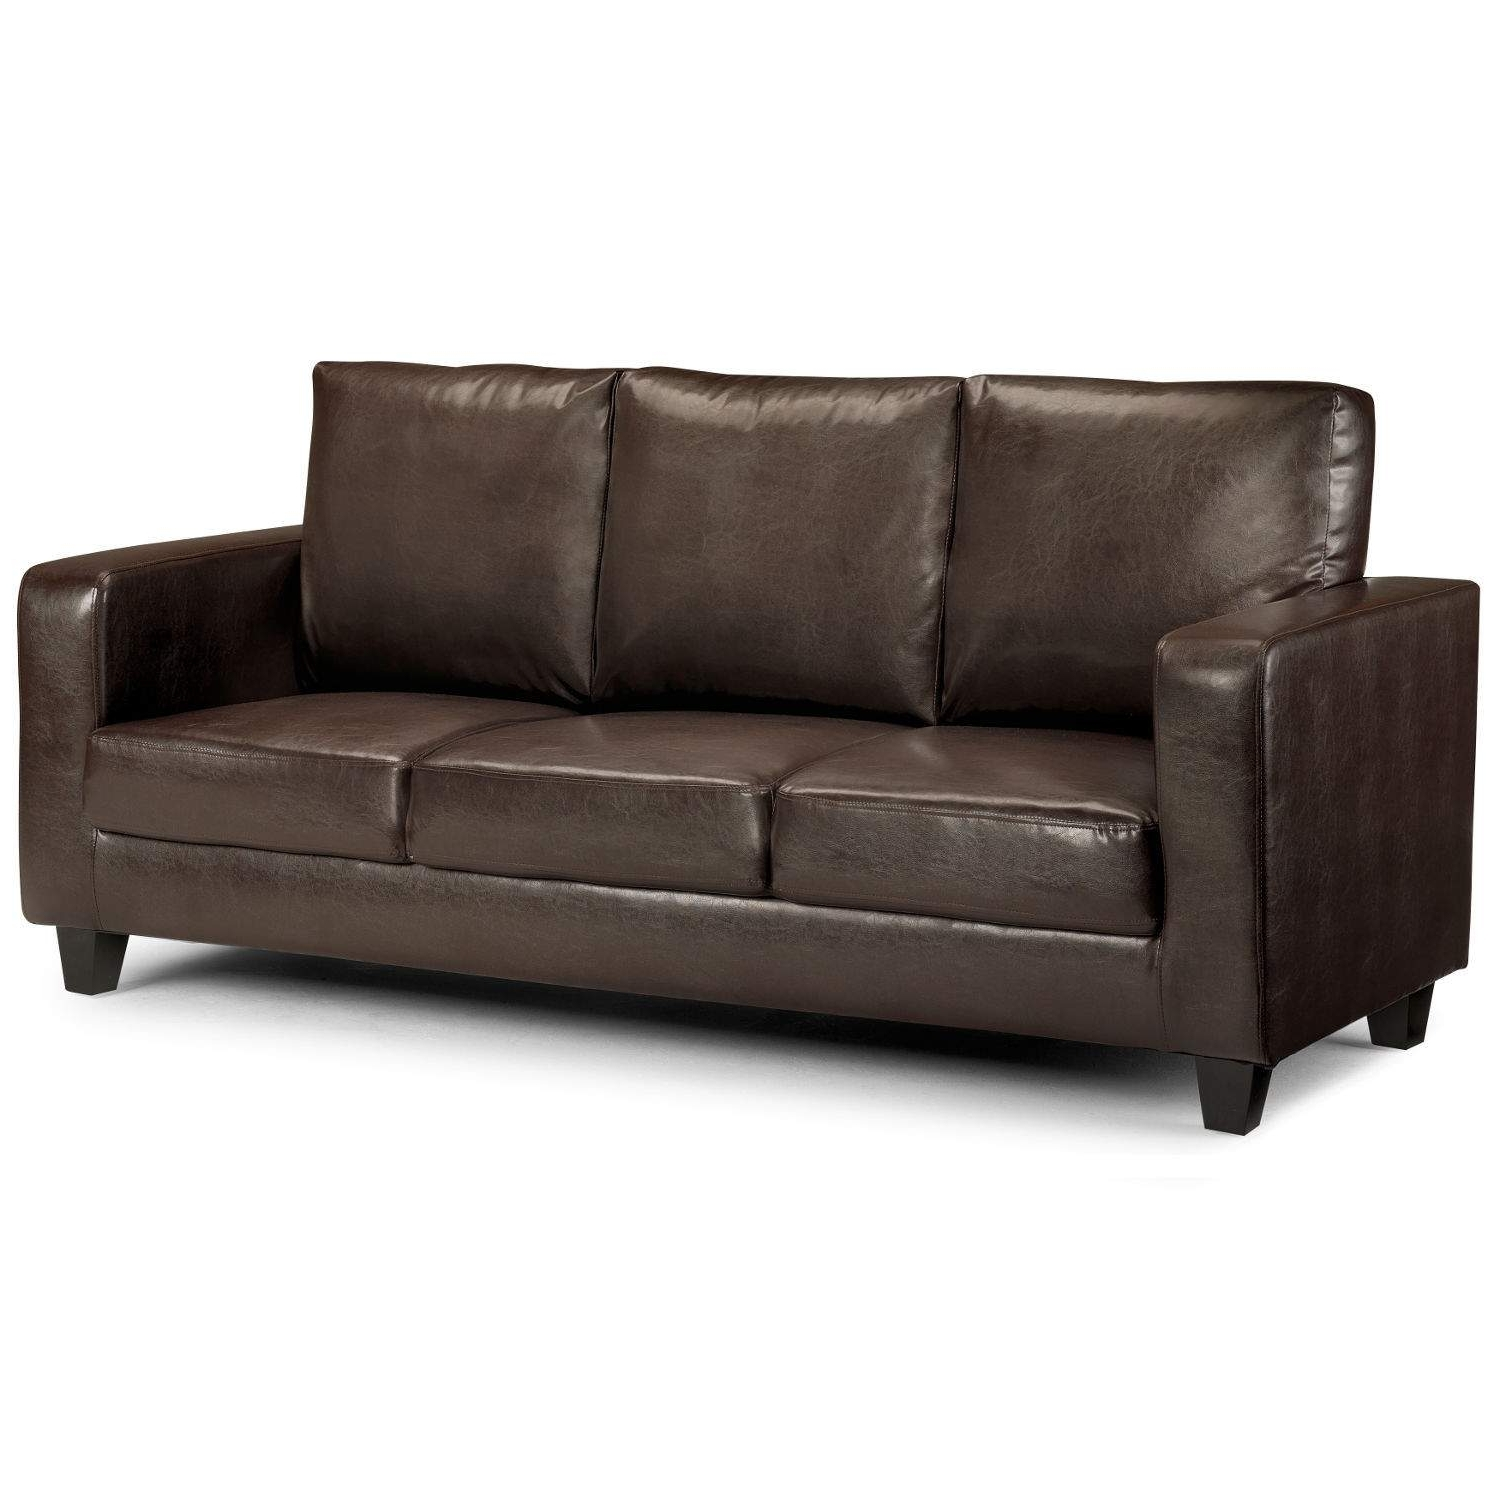 Matthew 3 Seater Faux Leather Sofa – Next Day Delivery Matthew 3 With Regard To Most Popular 3 Seater Leather Sofas (View 3 of 15)